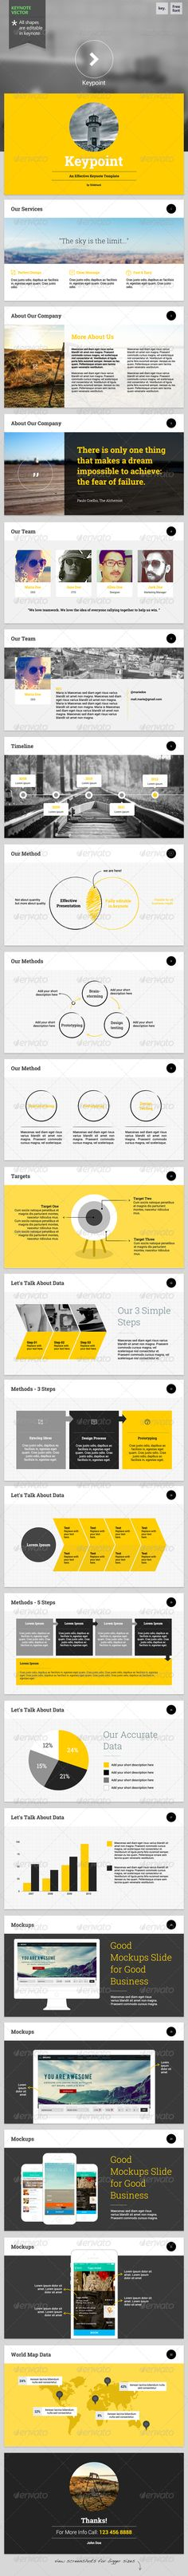 Keypoint - Keynote Template — Keynote KEY #modern #pitch • Available here → https://graphicriver.net/item/keypoint-keynote-template/6423267?ref=pxcr